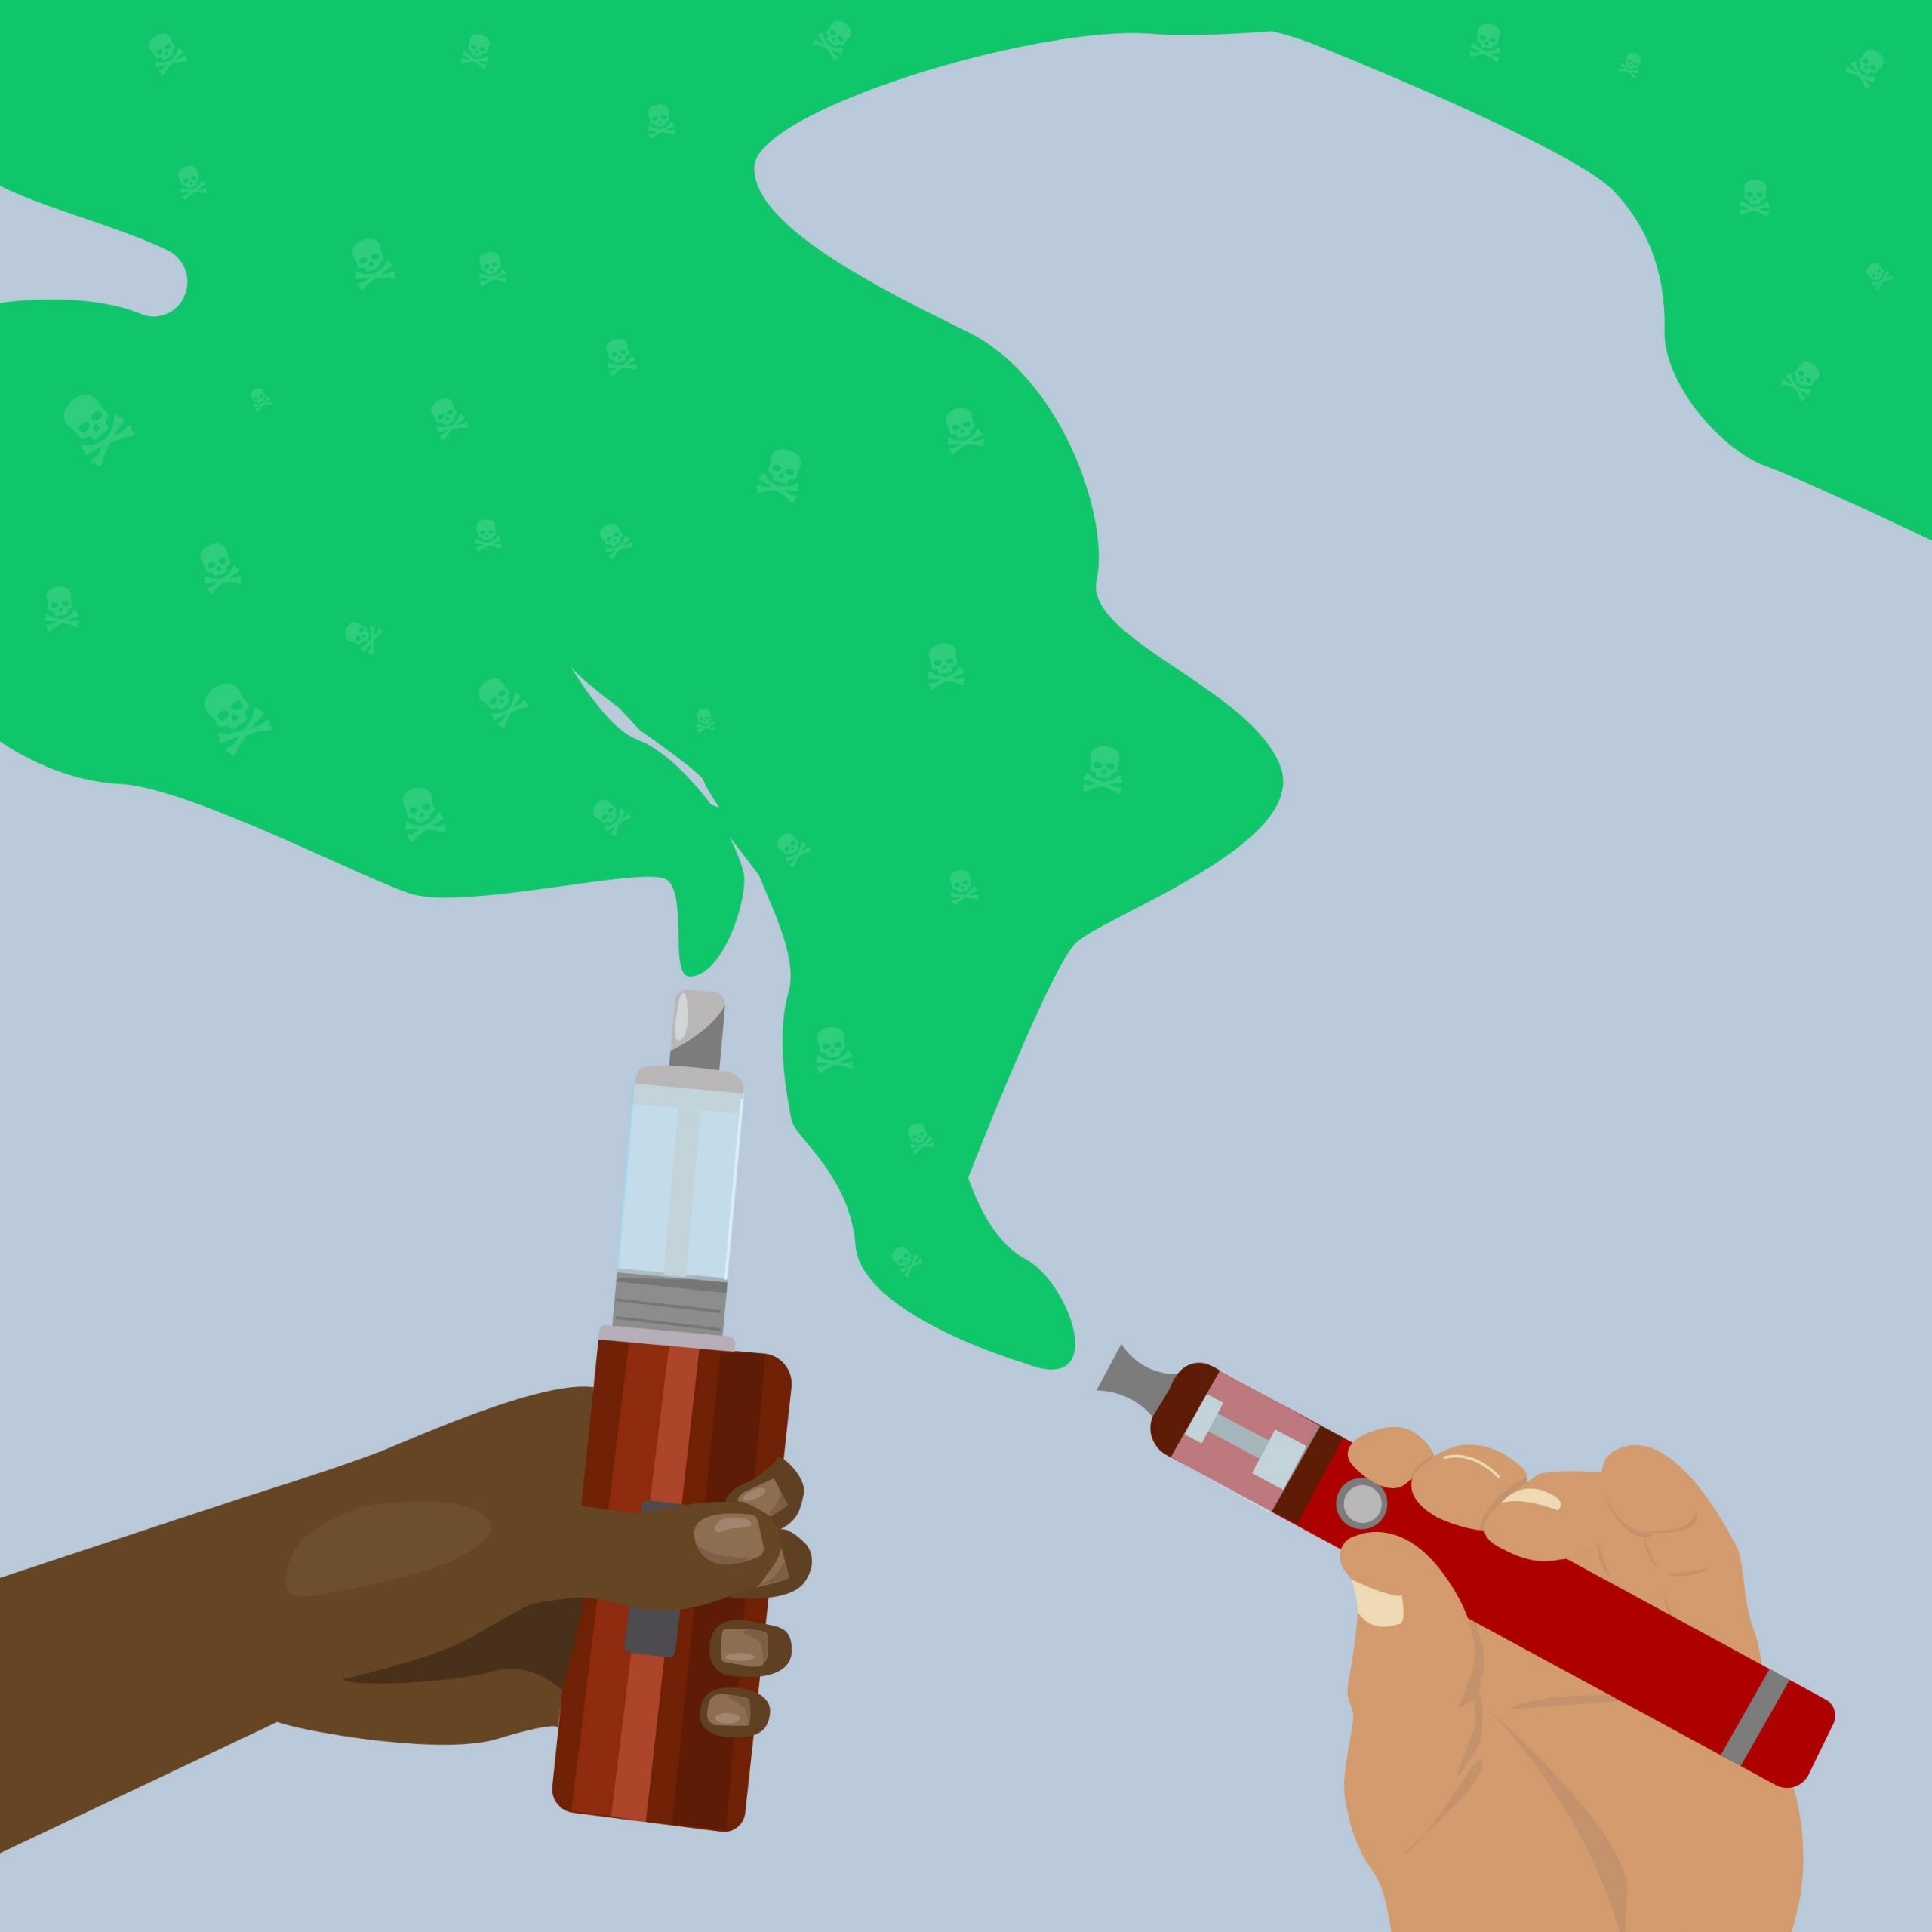 CBD vape cartridge illustration for 360 MAGAZINE